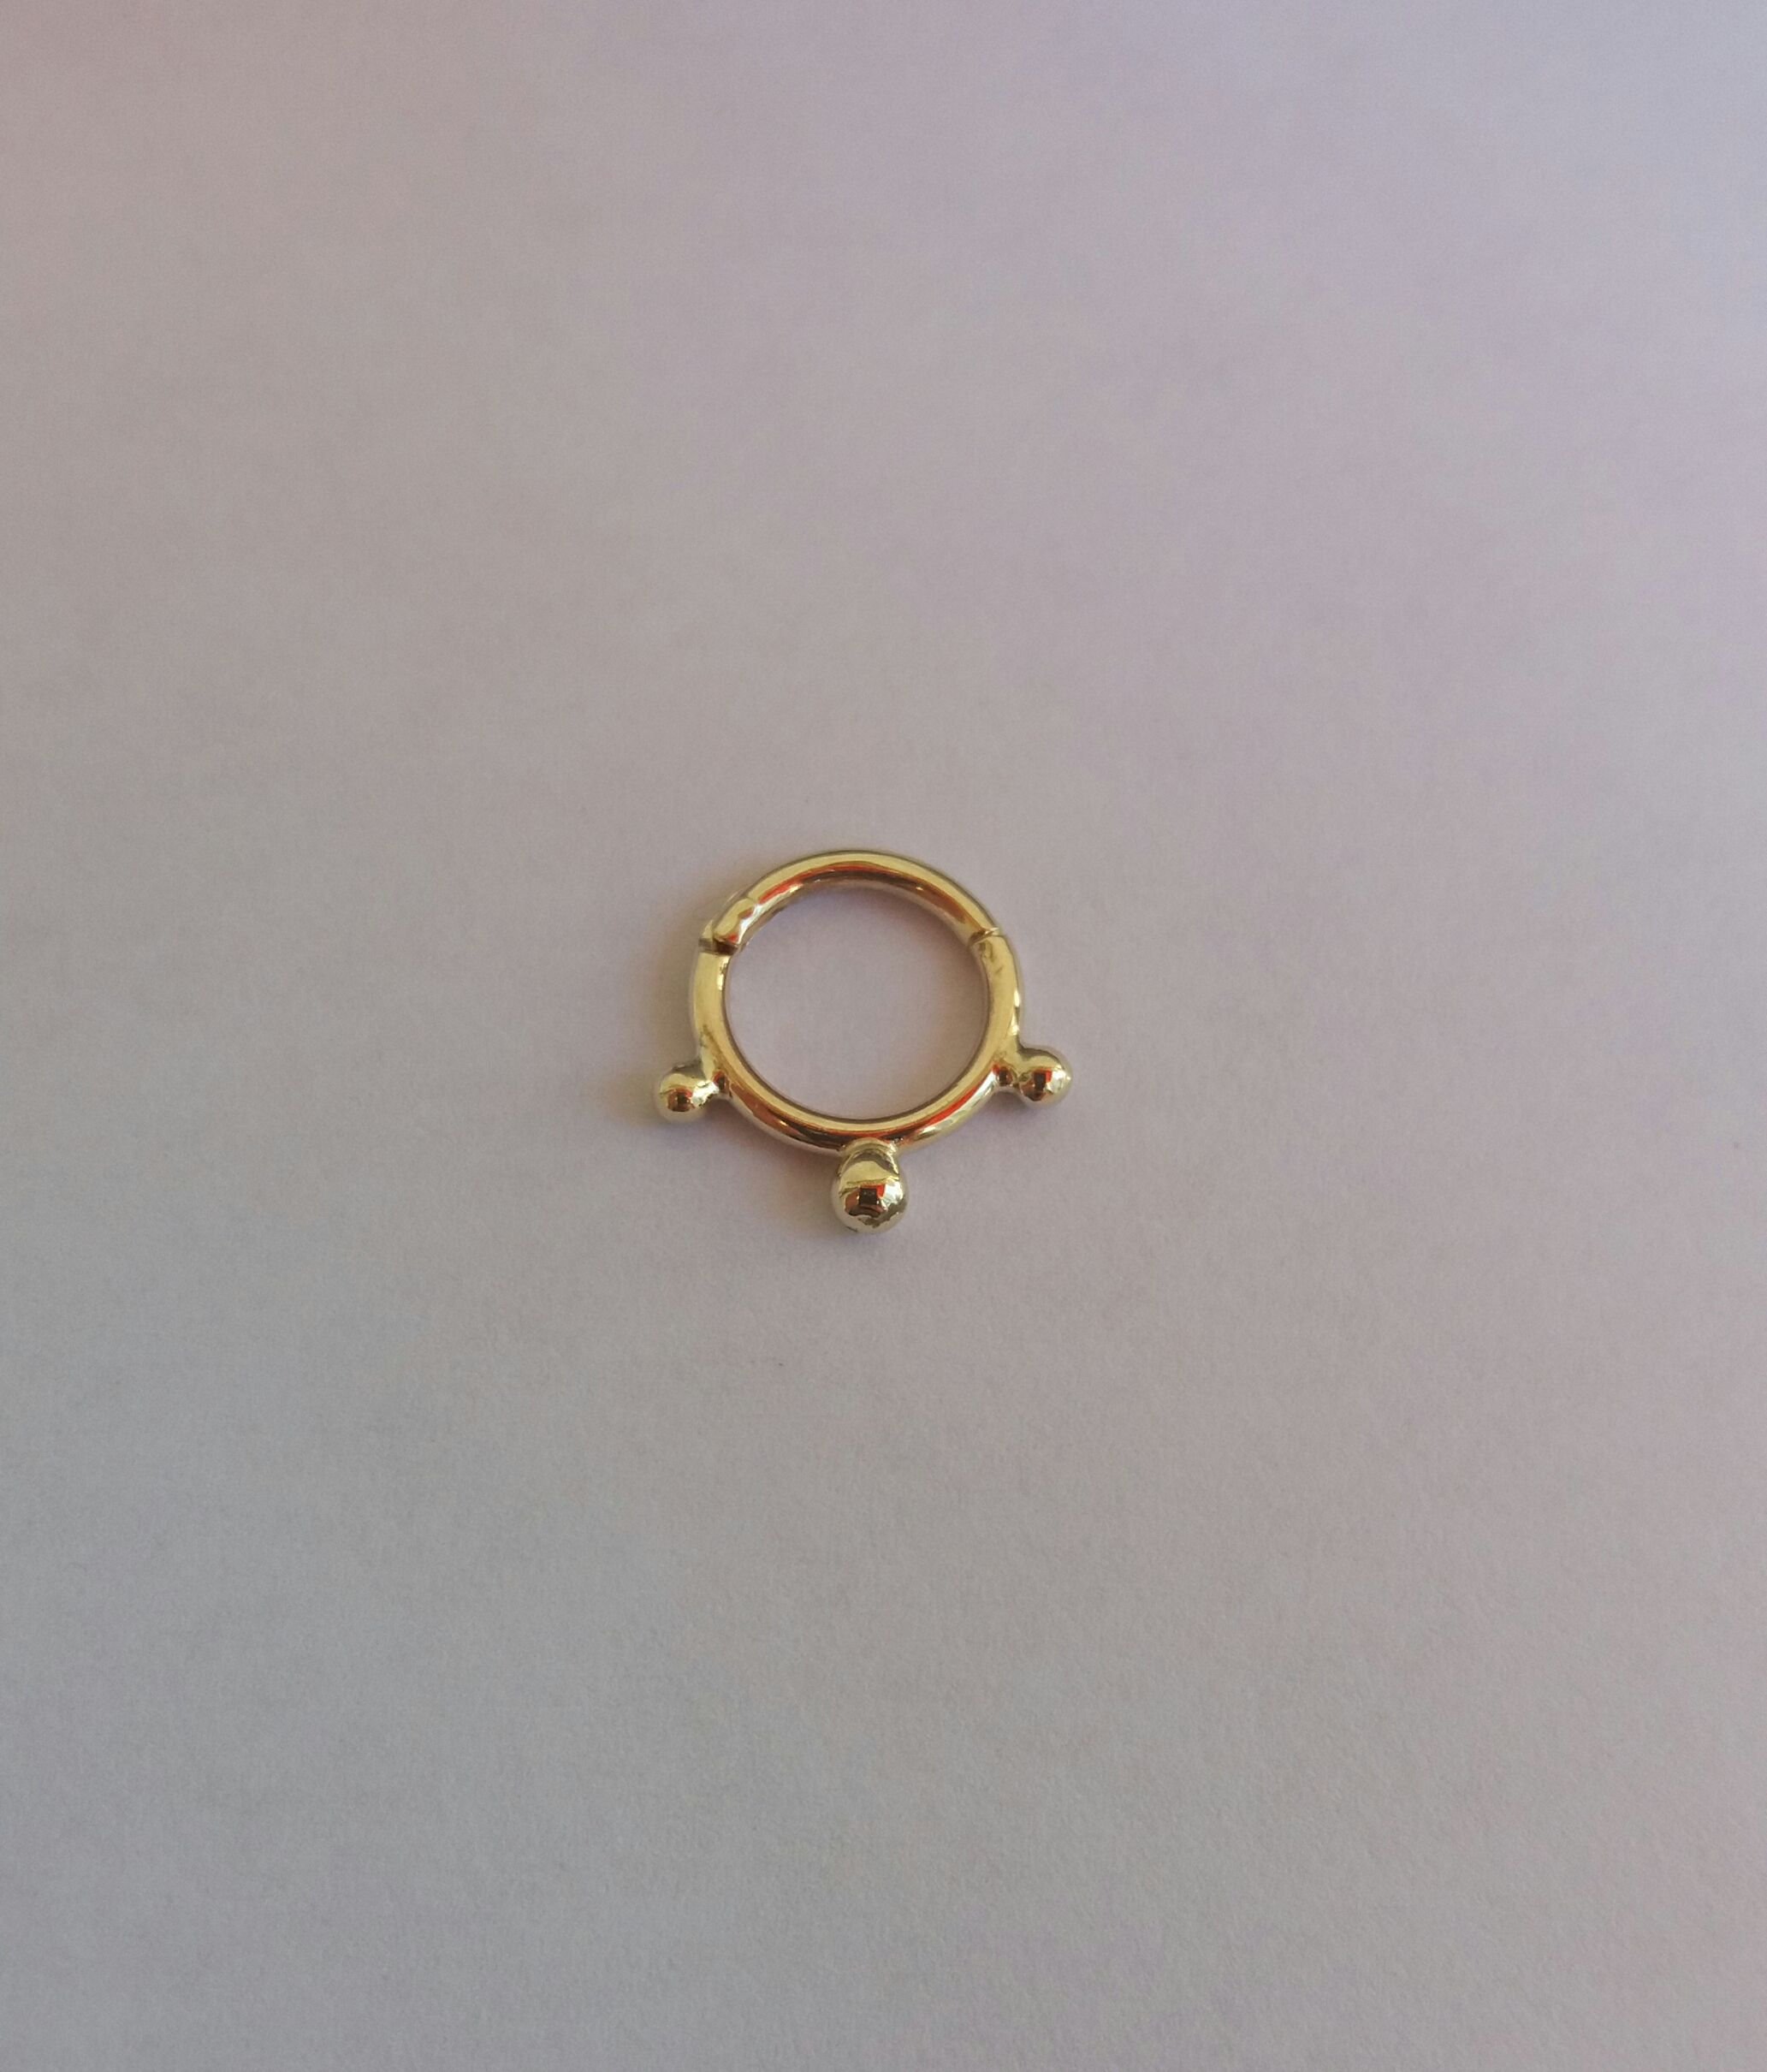 Gold nose piercing  septum jewelry  piercing clicker  septum ring nose ring  Nose